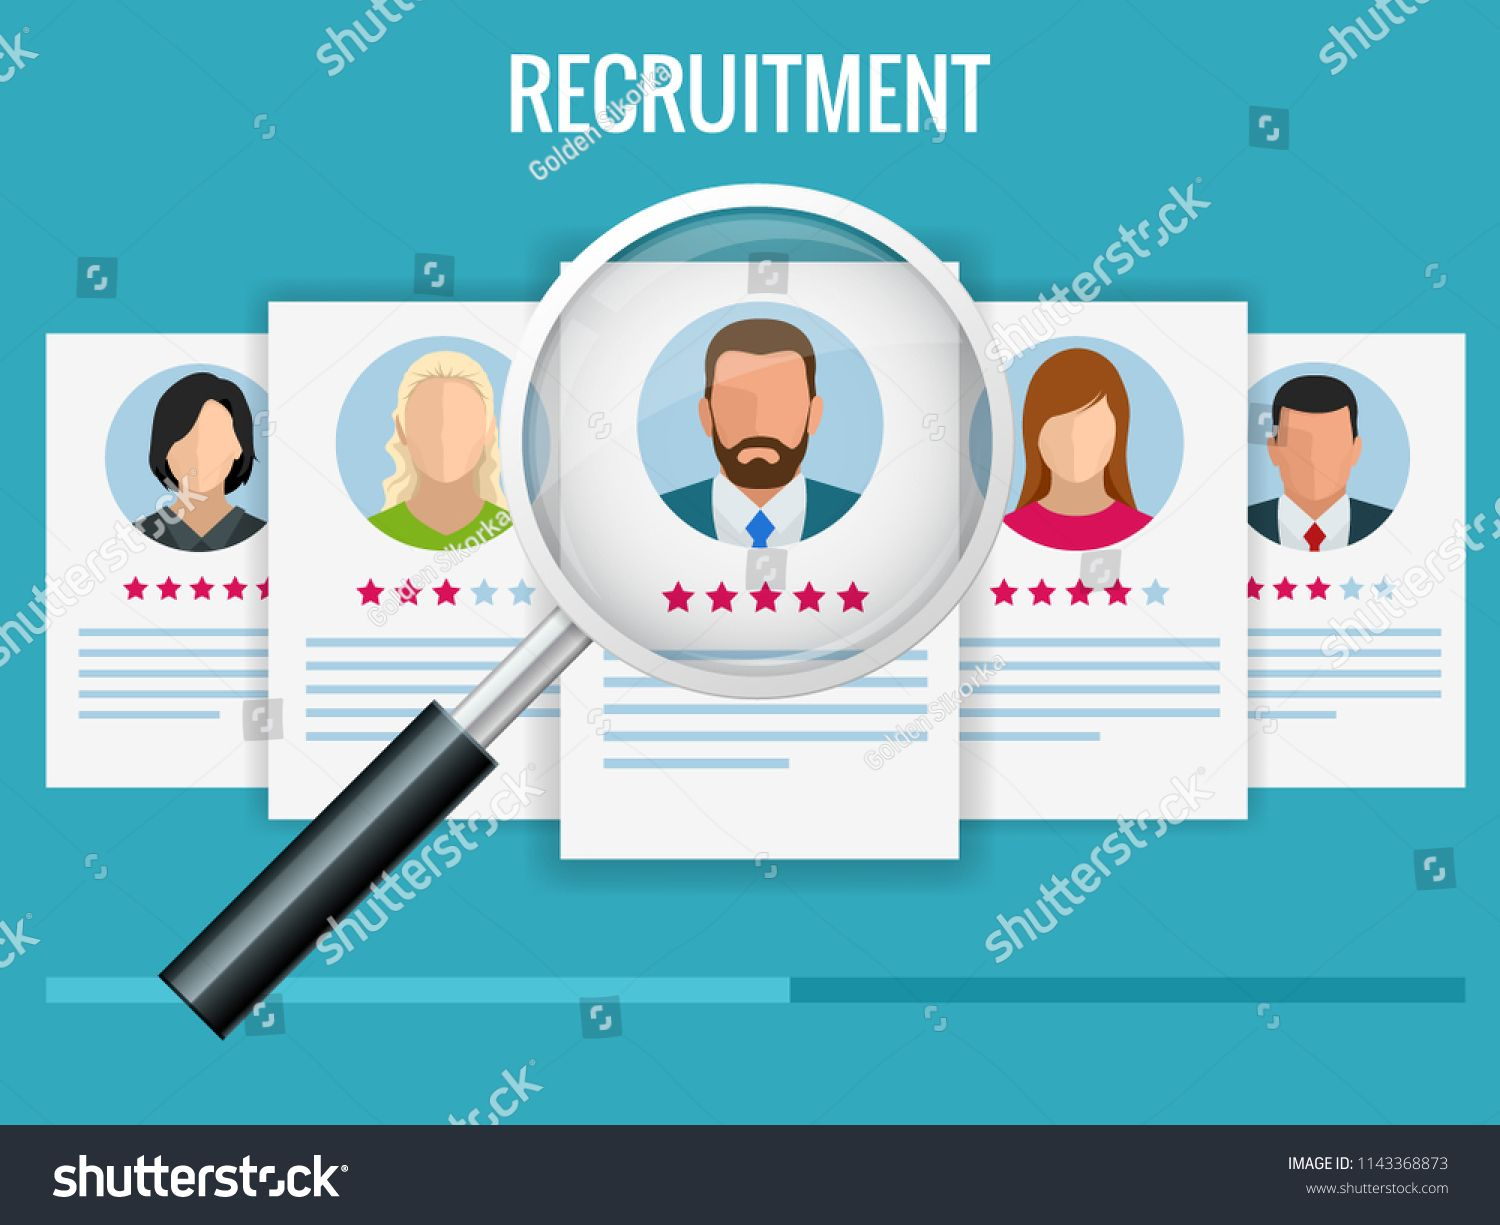 Hiring And Recruitment Concept For Web Page Banner Presentation Job Interview Recruitment Agency Illustrationweb Page Imagenes Lindas Imagenes Empresarial